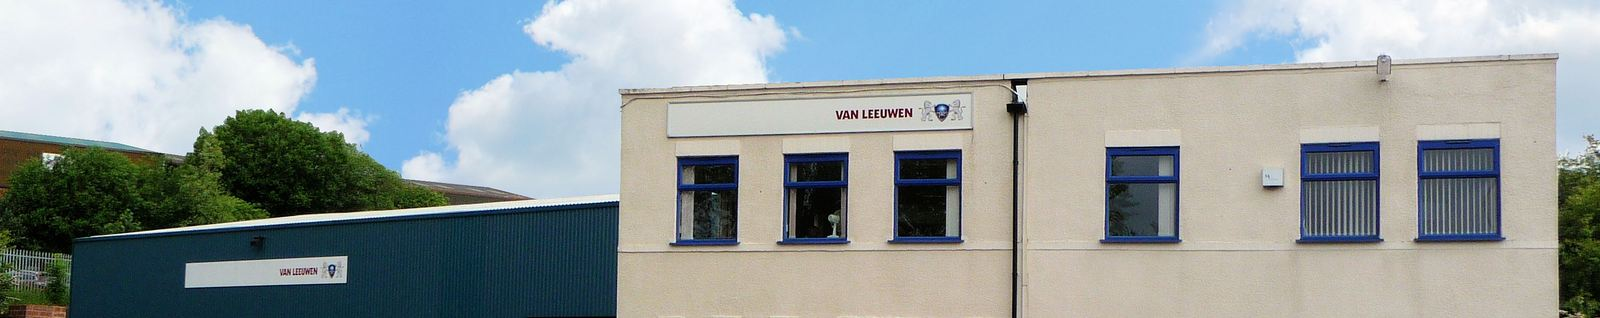 Van Leeuwen (Brierley Hill, UK)